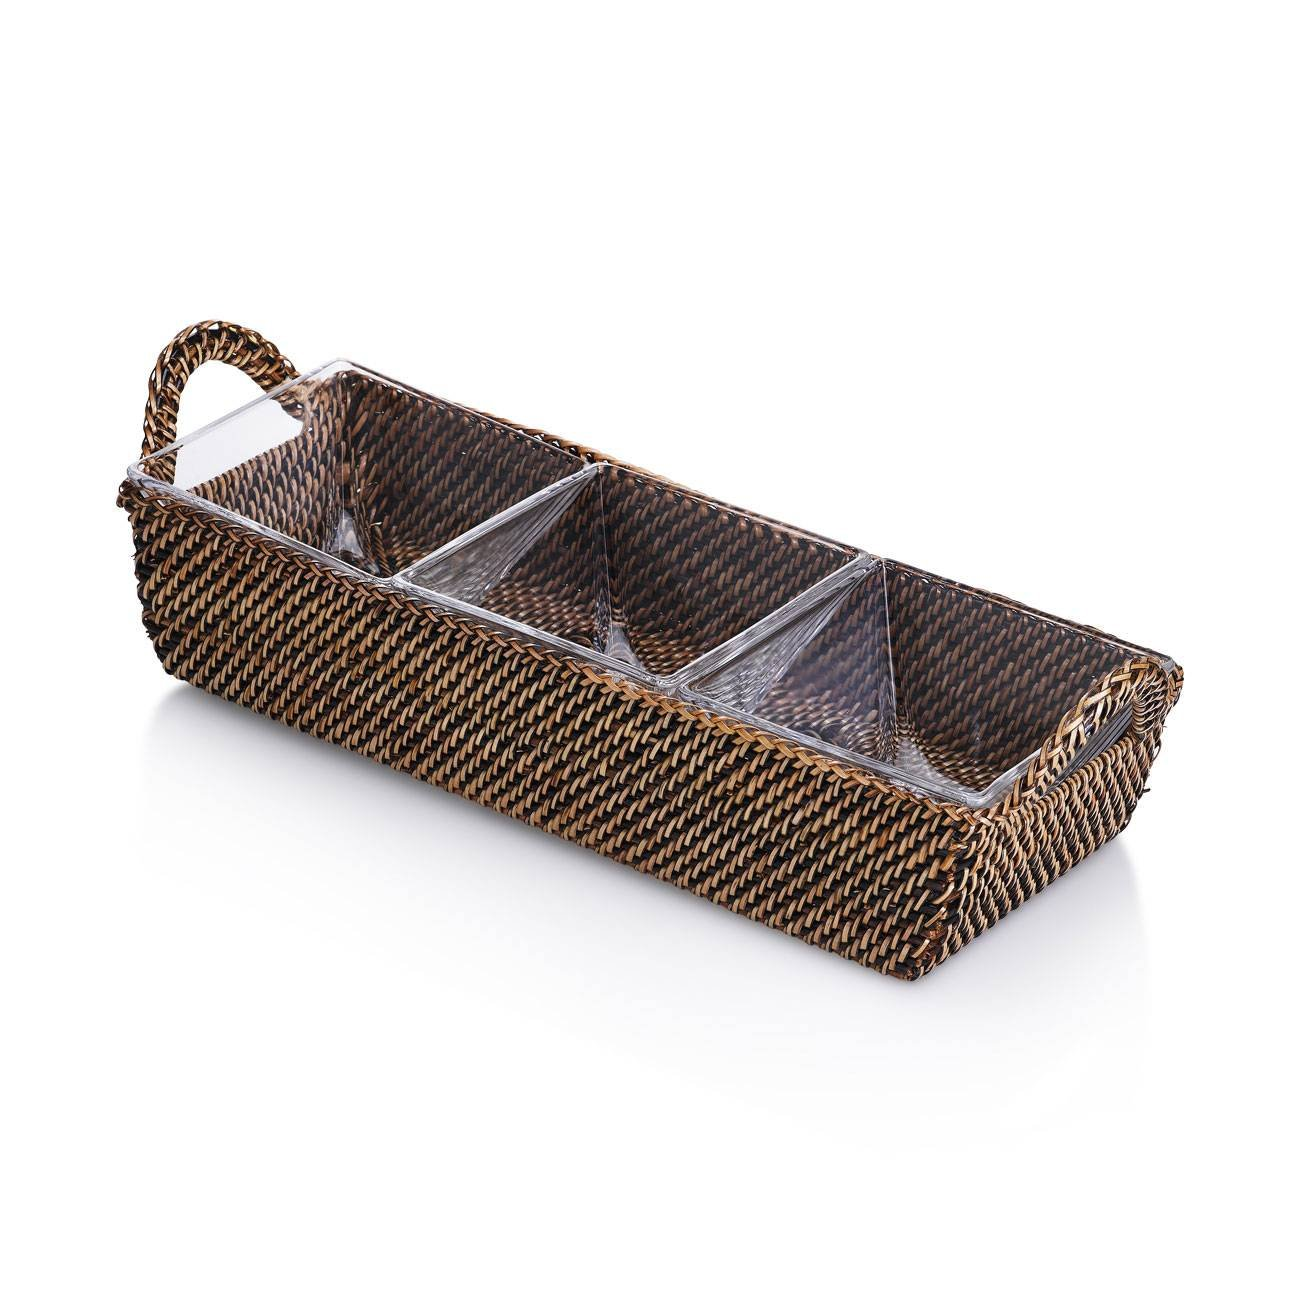 Calaisio Rectangular Tray with 3 Glass Dishes